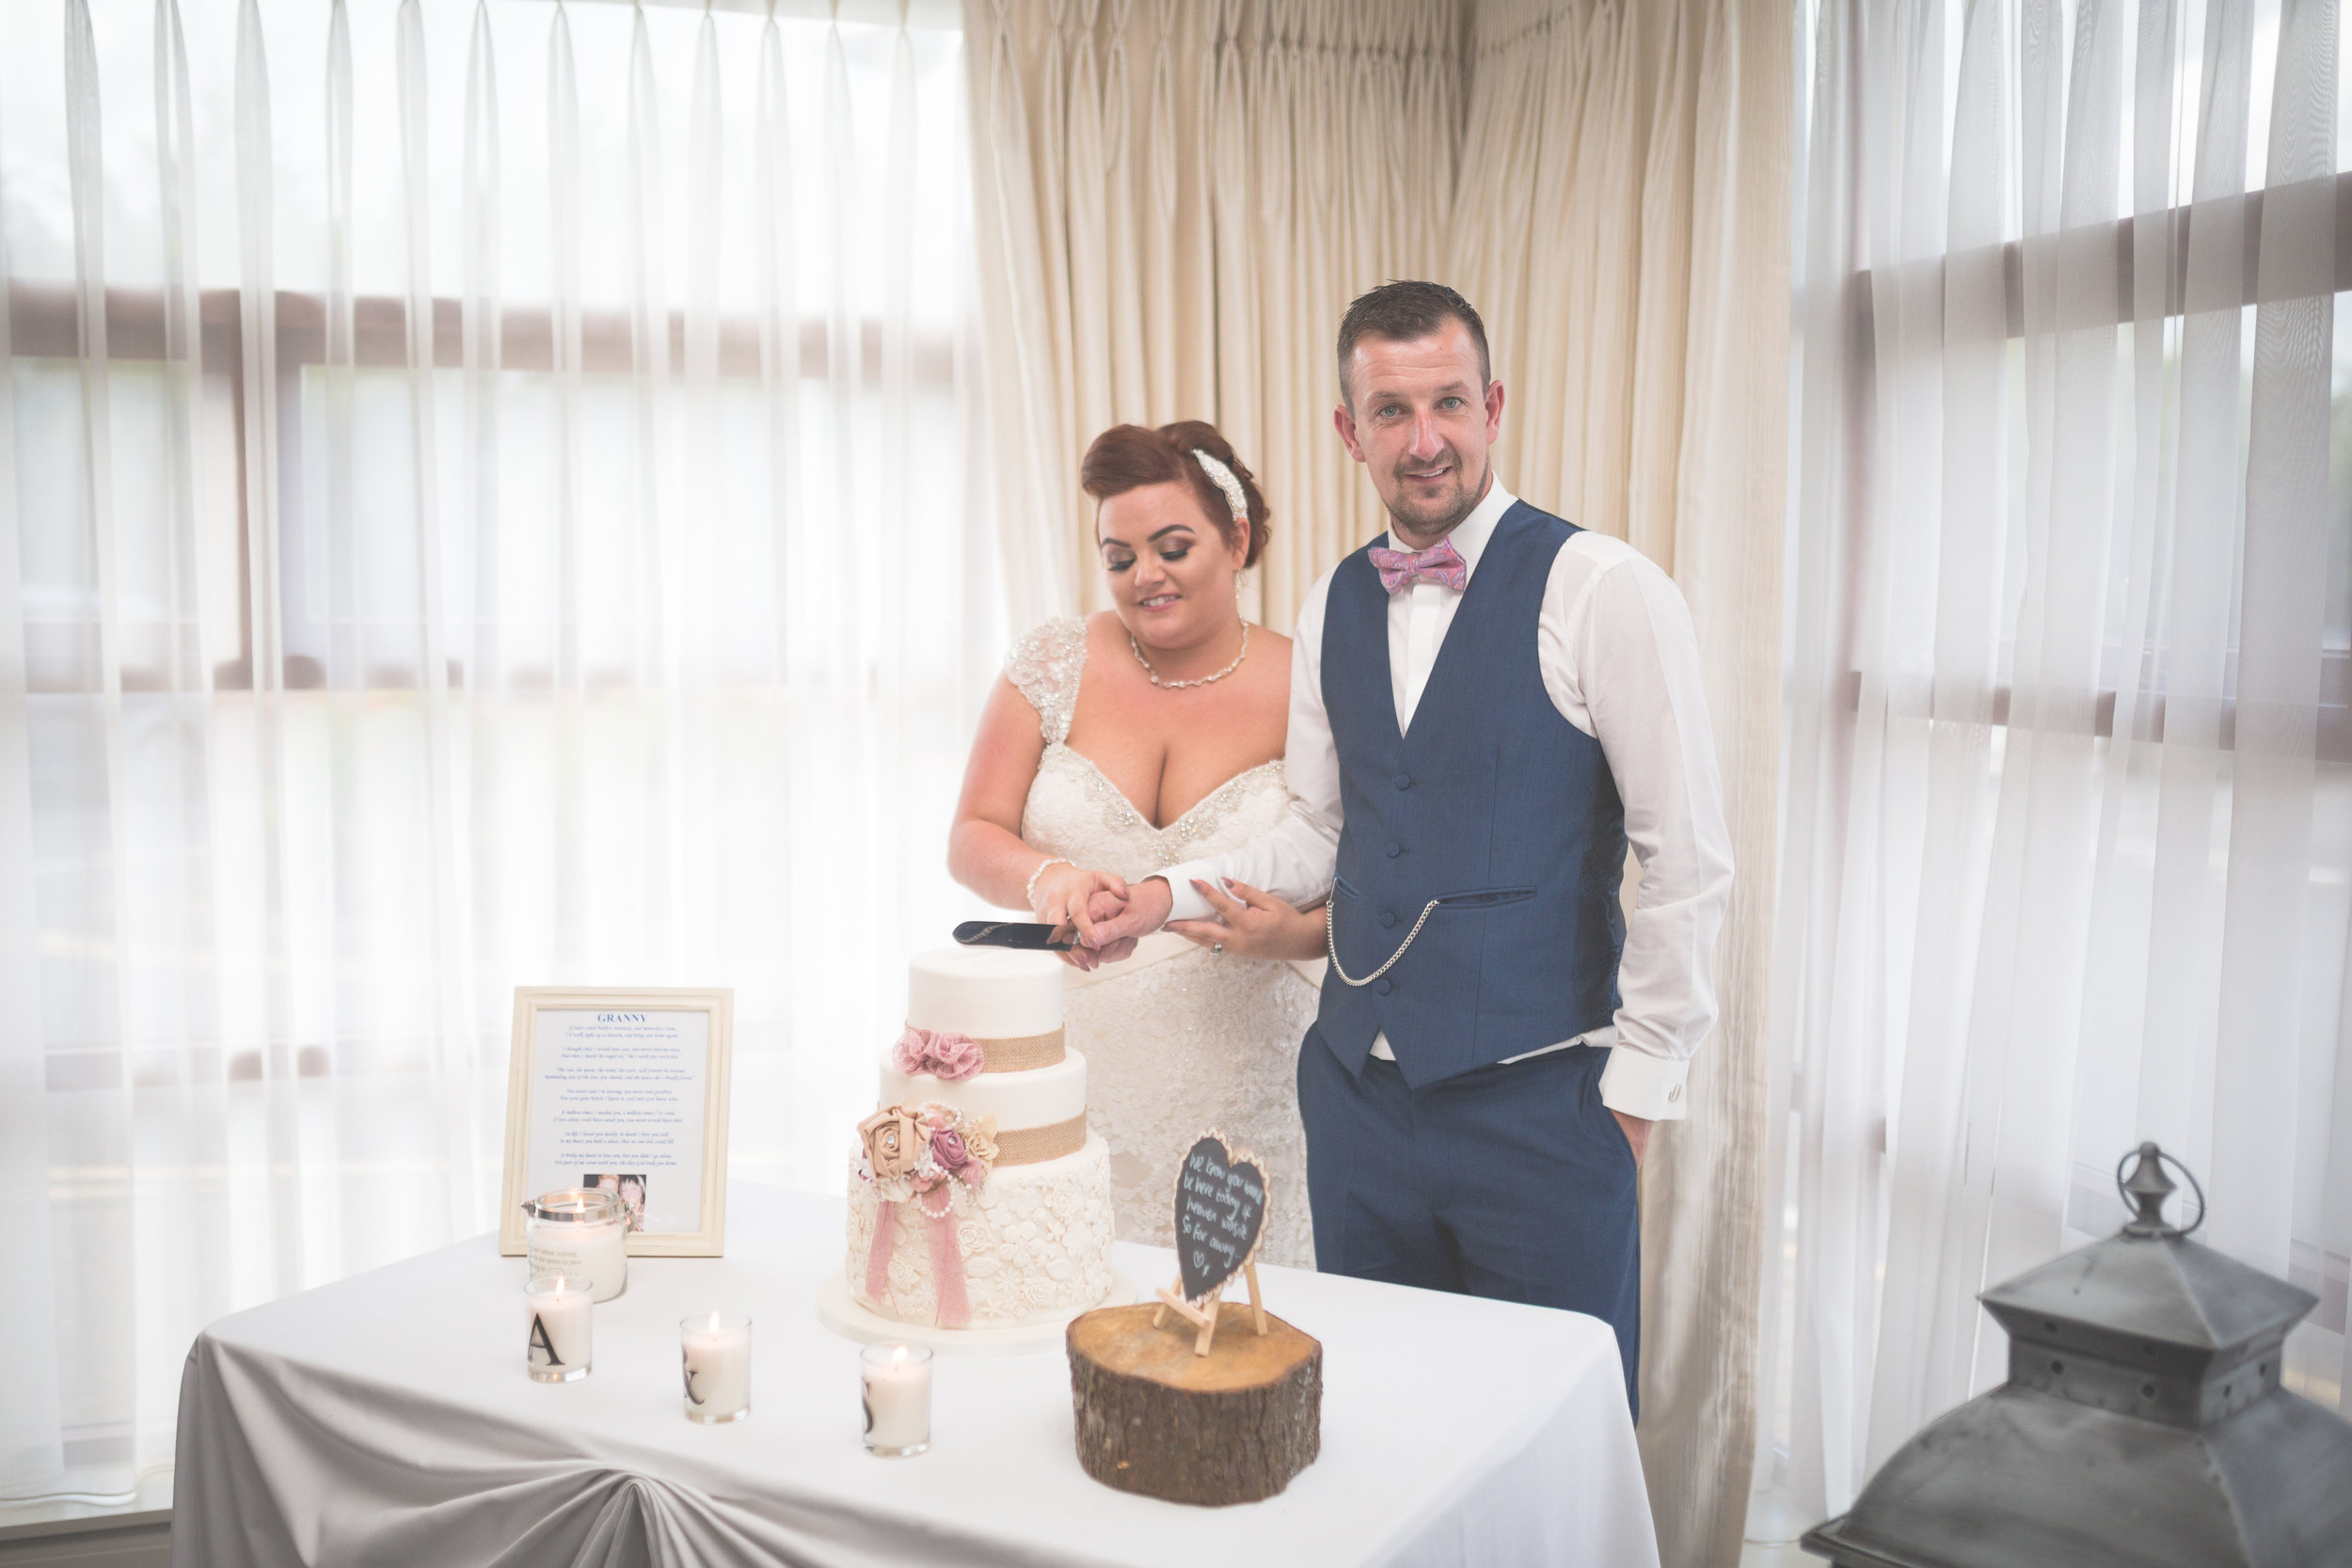 Antoinette & Stephen - Speeches | Brian McEwan Photography | Wedding Photographer Northern Ireland 101.jpg